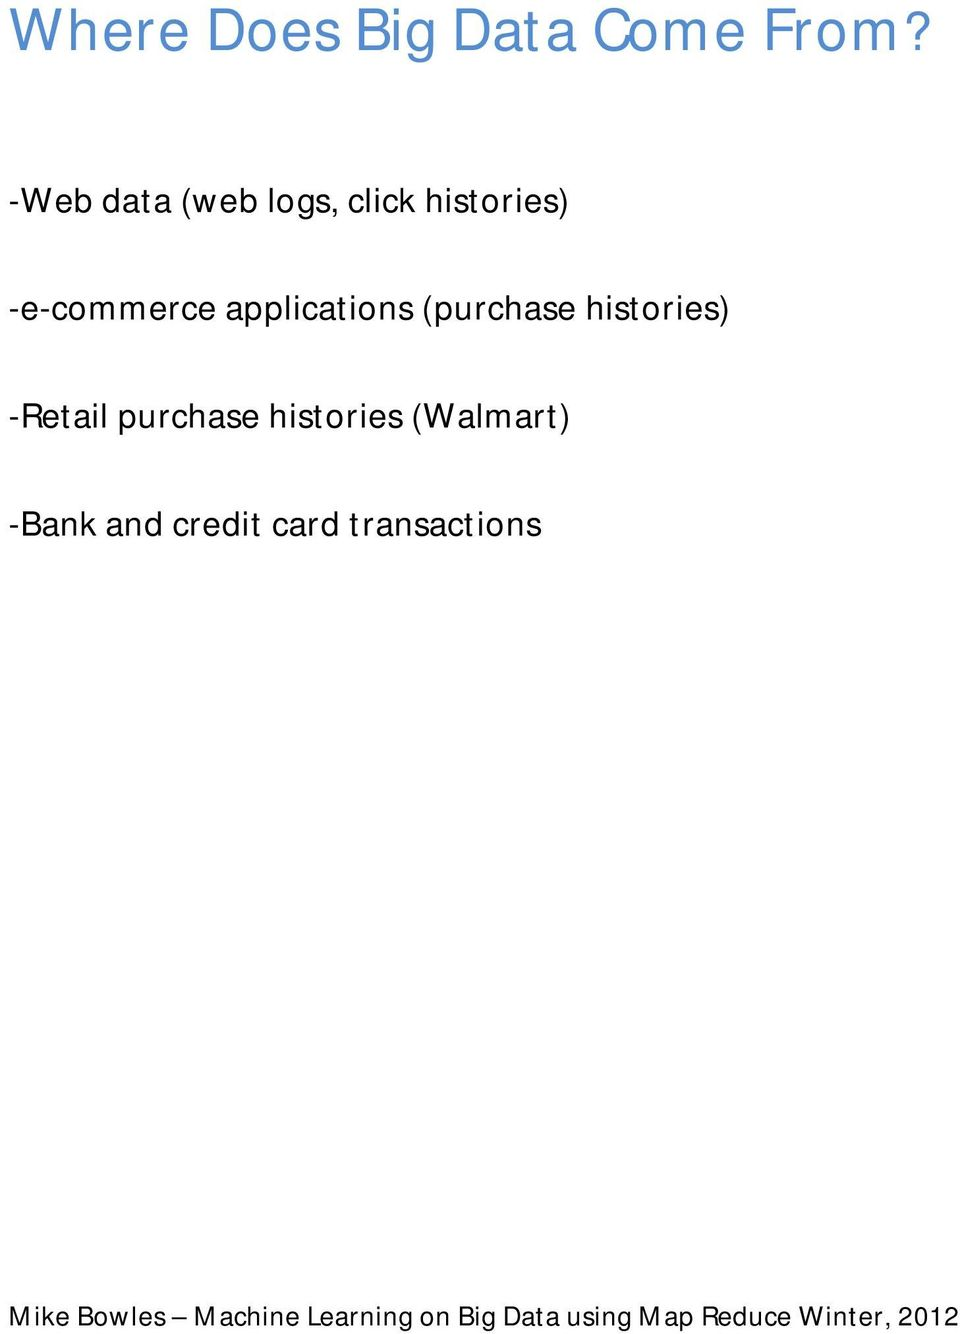 -e-commerce applications (purchase histories)